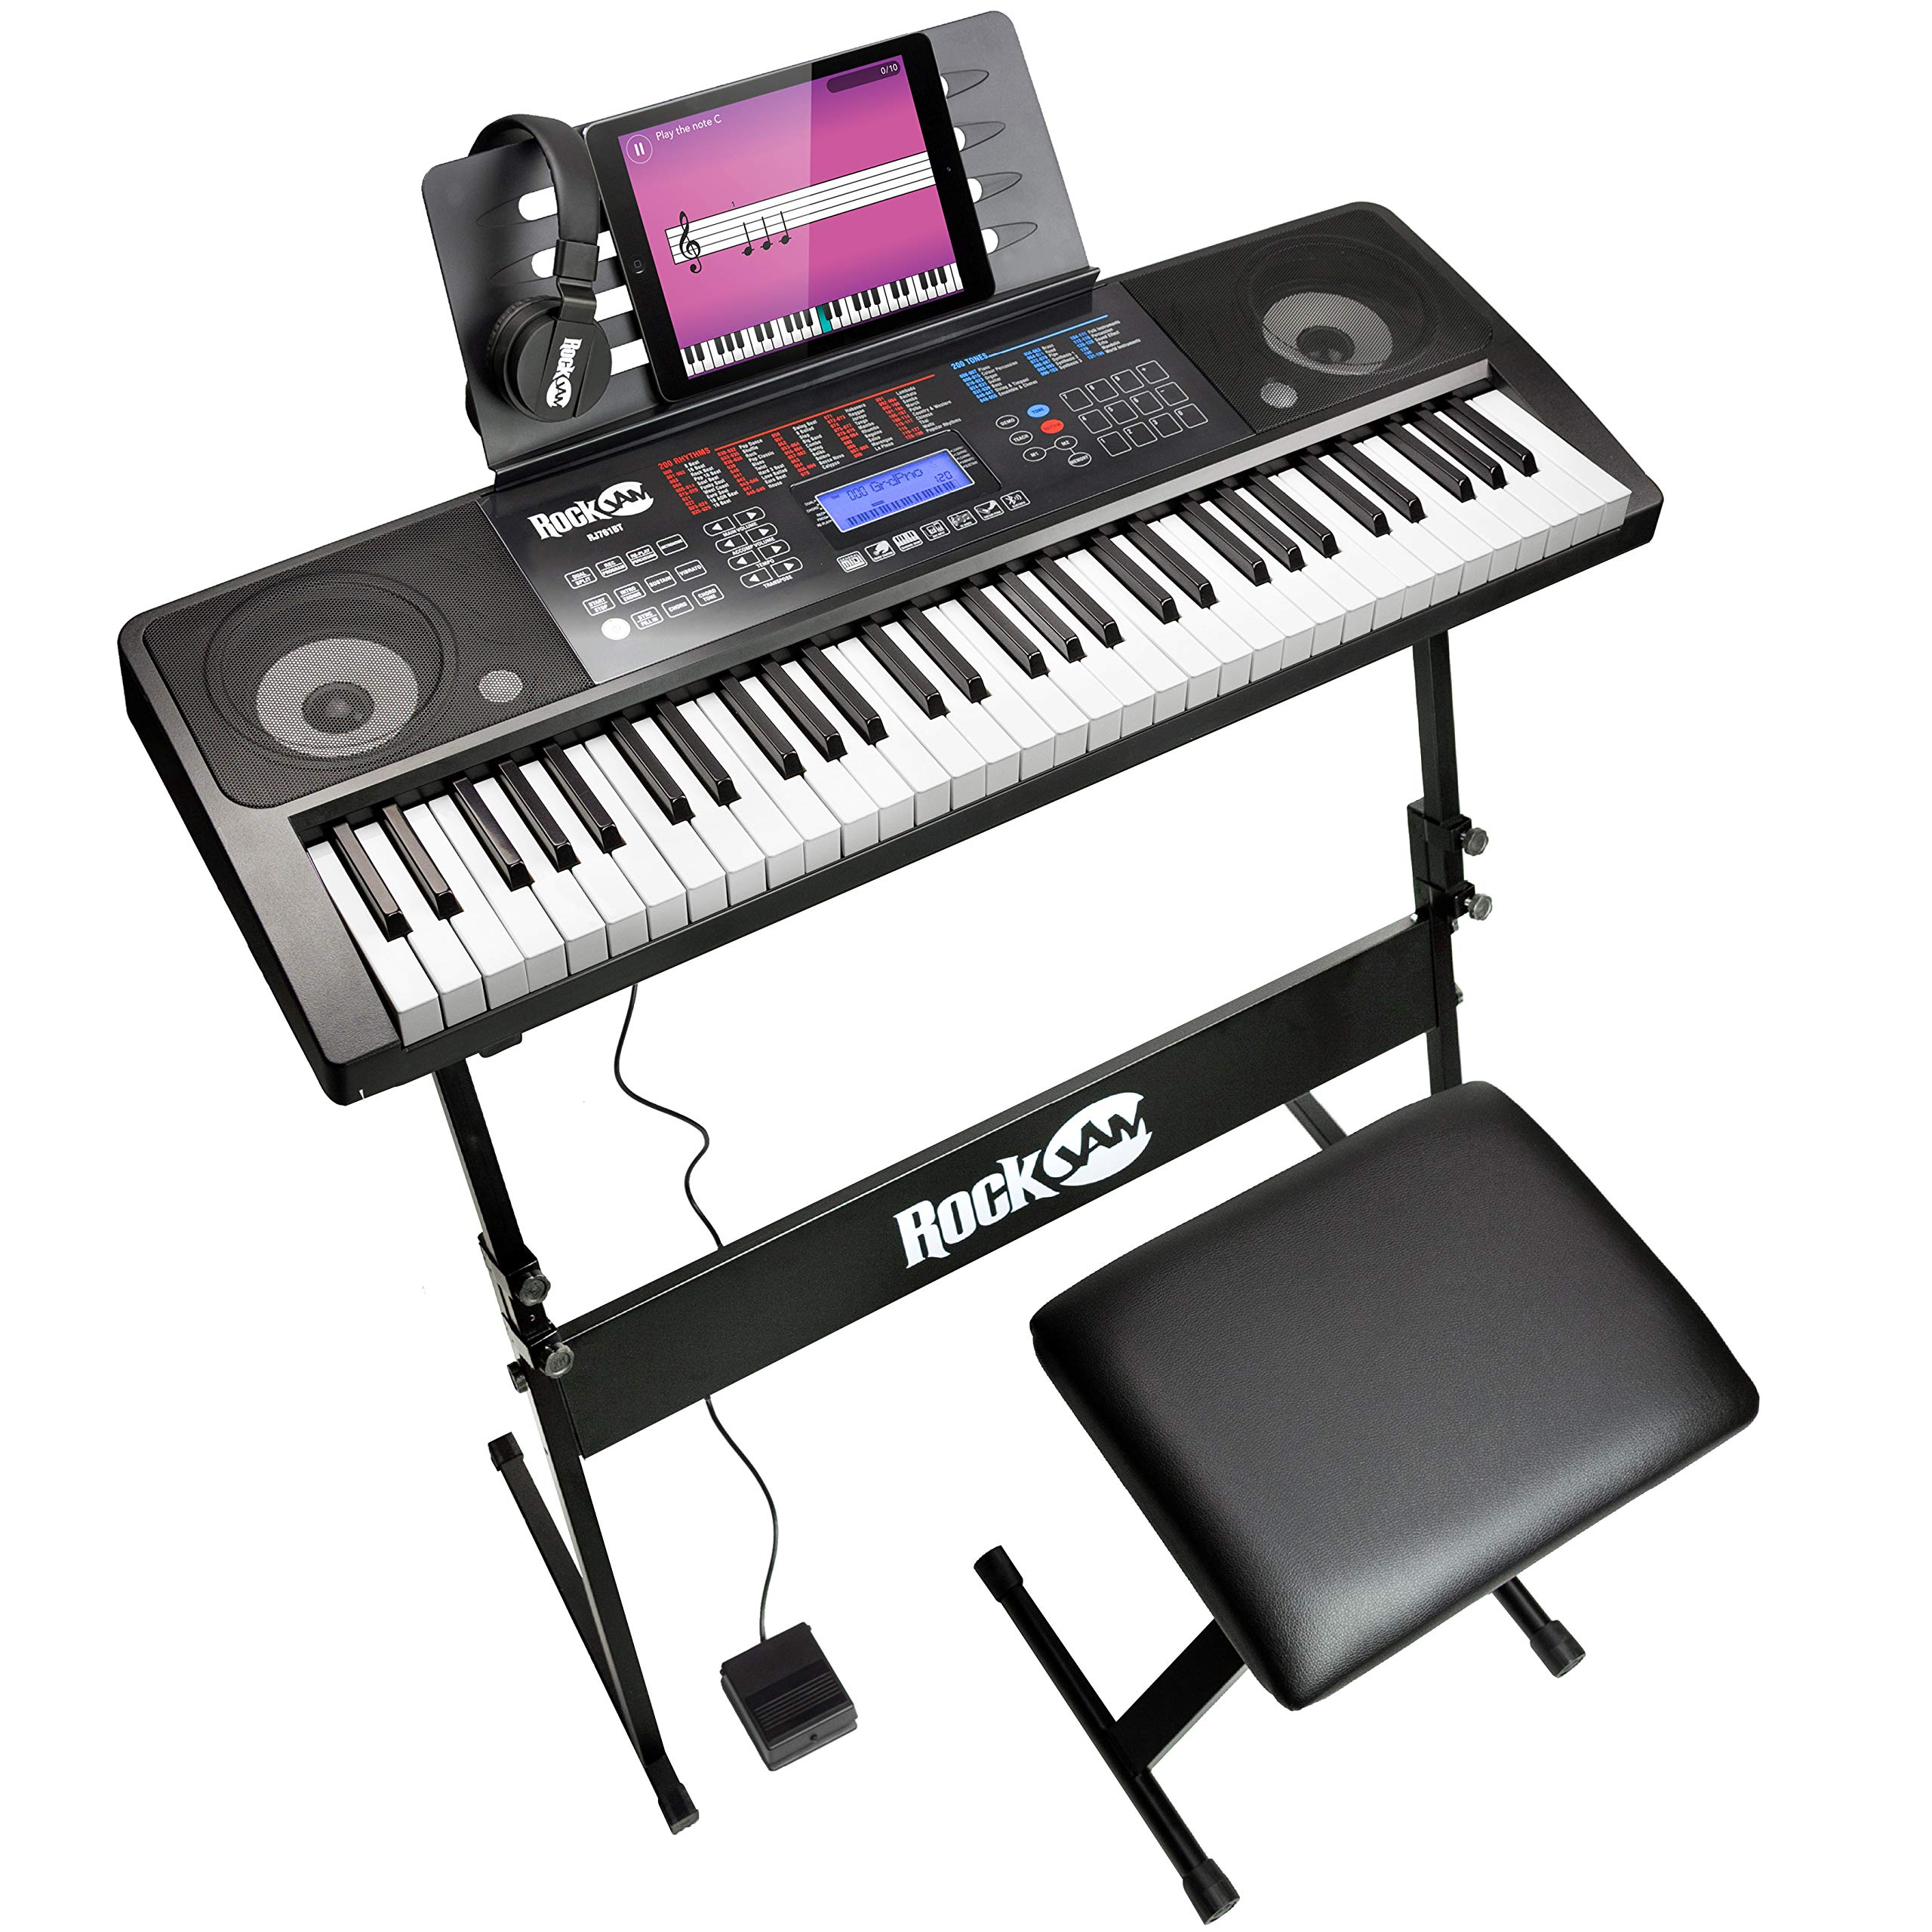 RockJam RJ761 61 Key Electronic Interactive Teaching Piano Keyboard with Stand, Stool, Sustain Pedal and Headphones (RJ761-SK) by RockJam